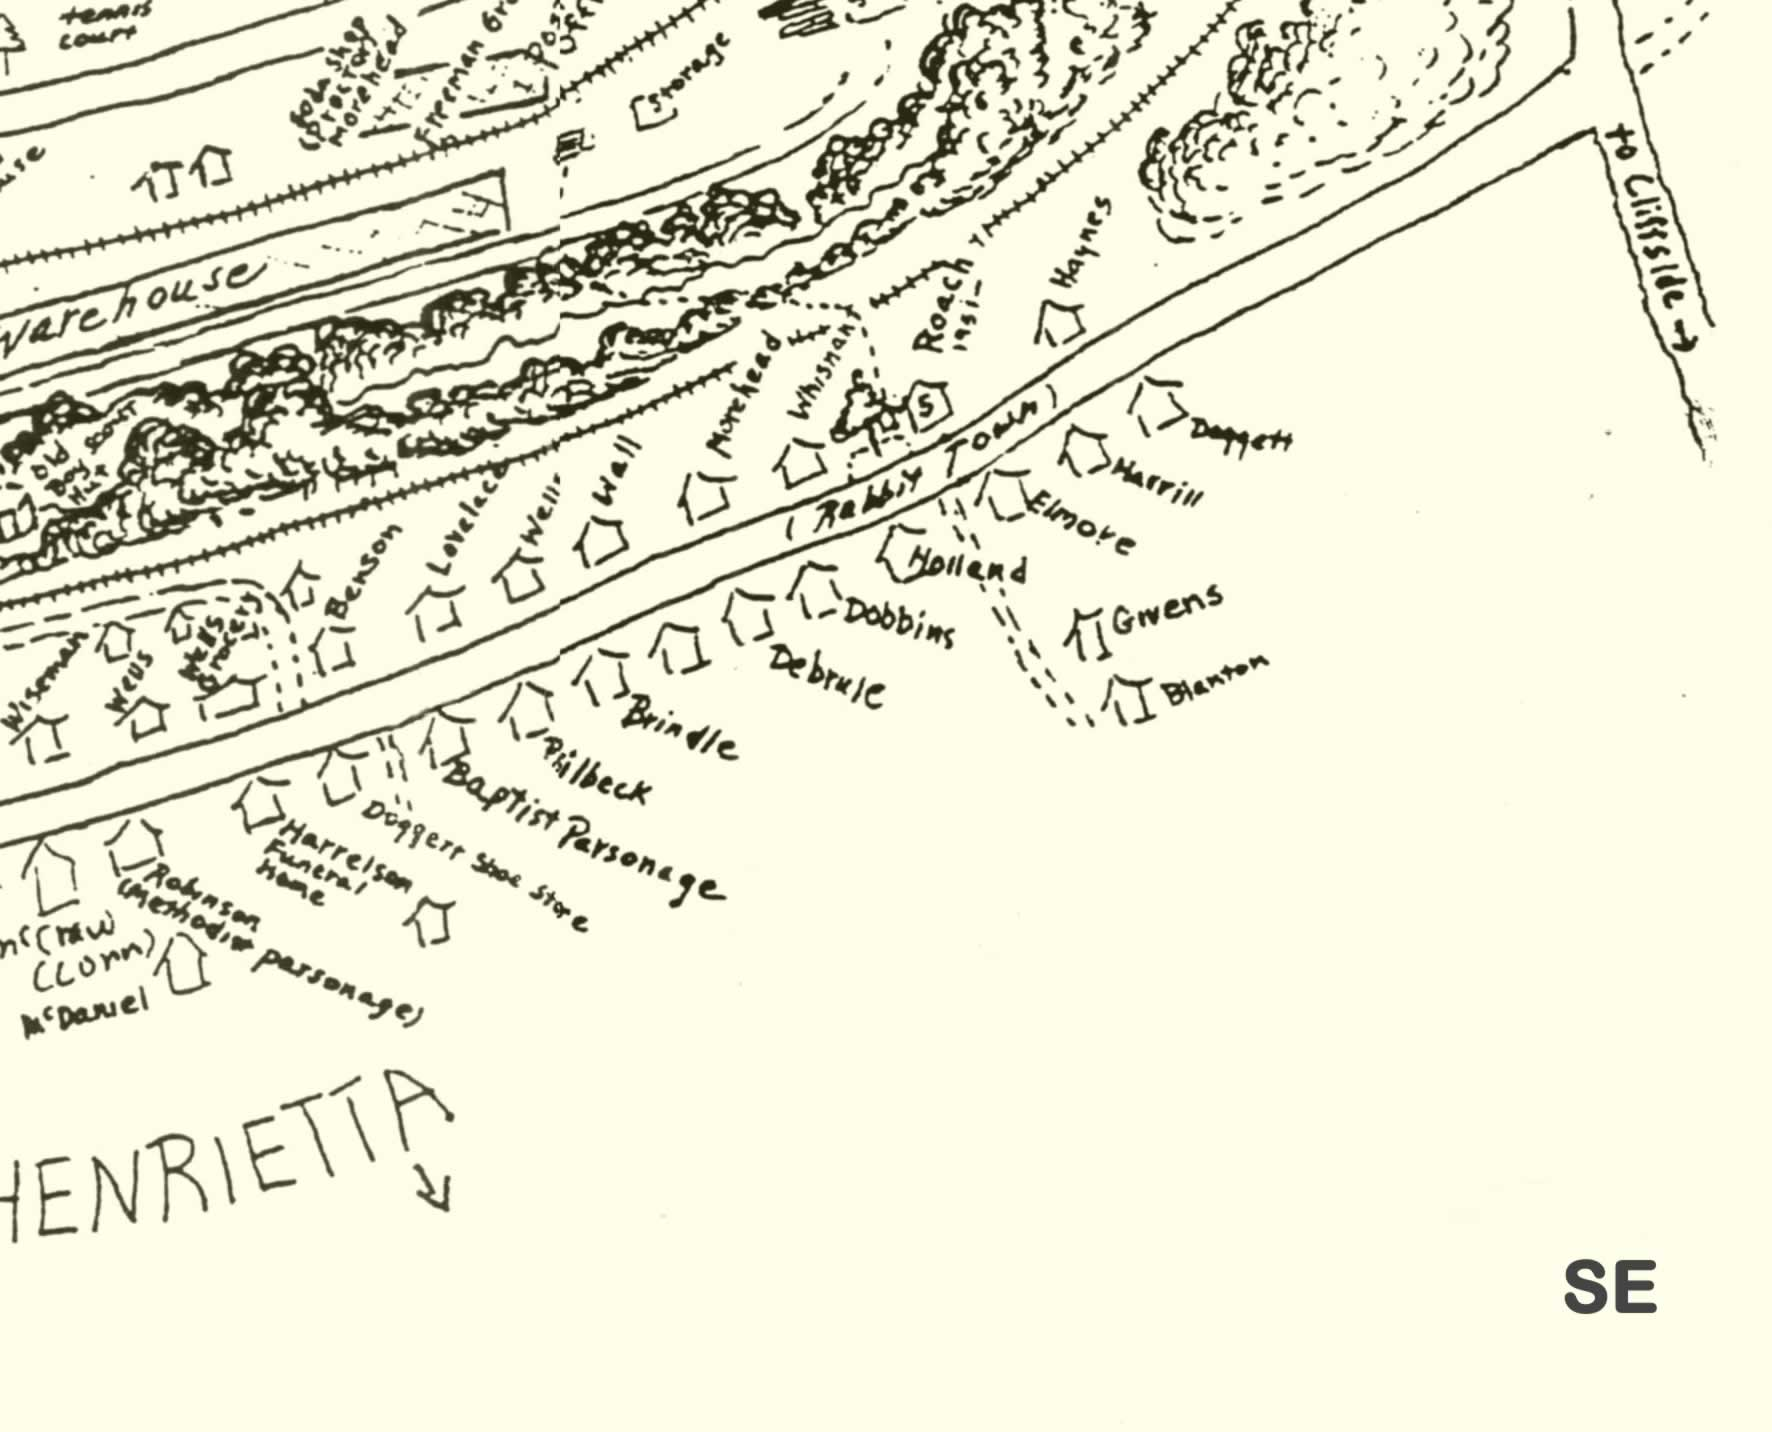 The southeastern quadrant of the map